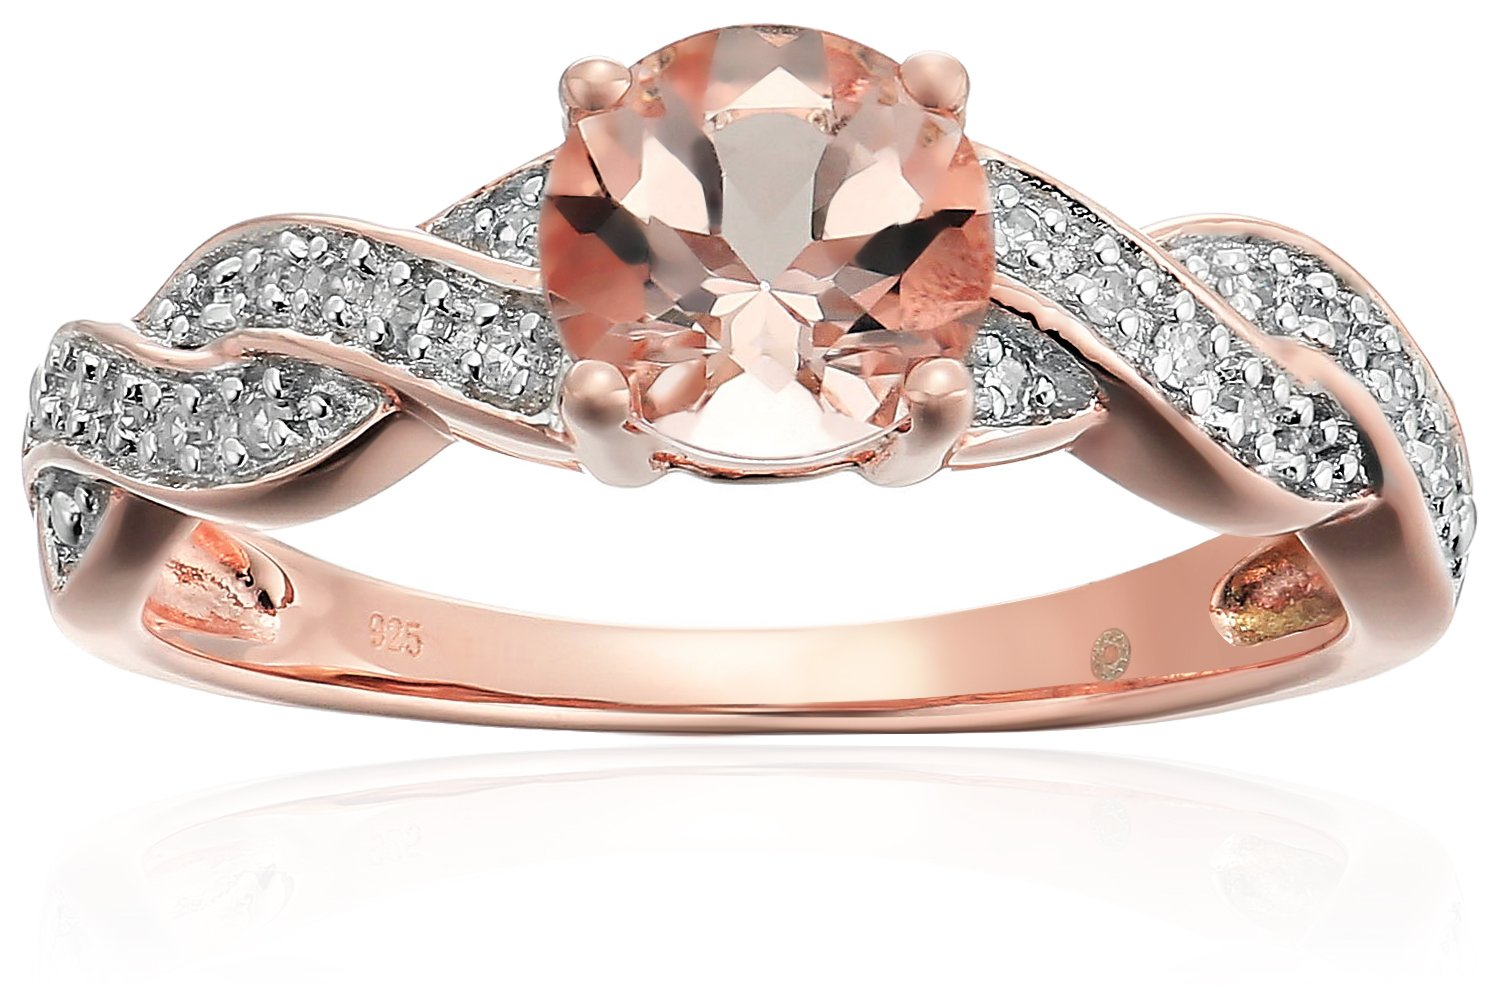 Rose Gold-plated Silver Morganite And Diamond Twisted Shank Engagement Ring (1/10 cttw, H-I Color, I1-I2 Clarity), Size 7